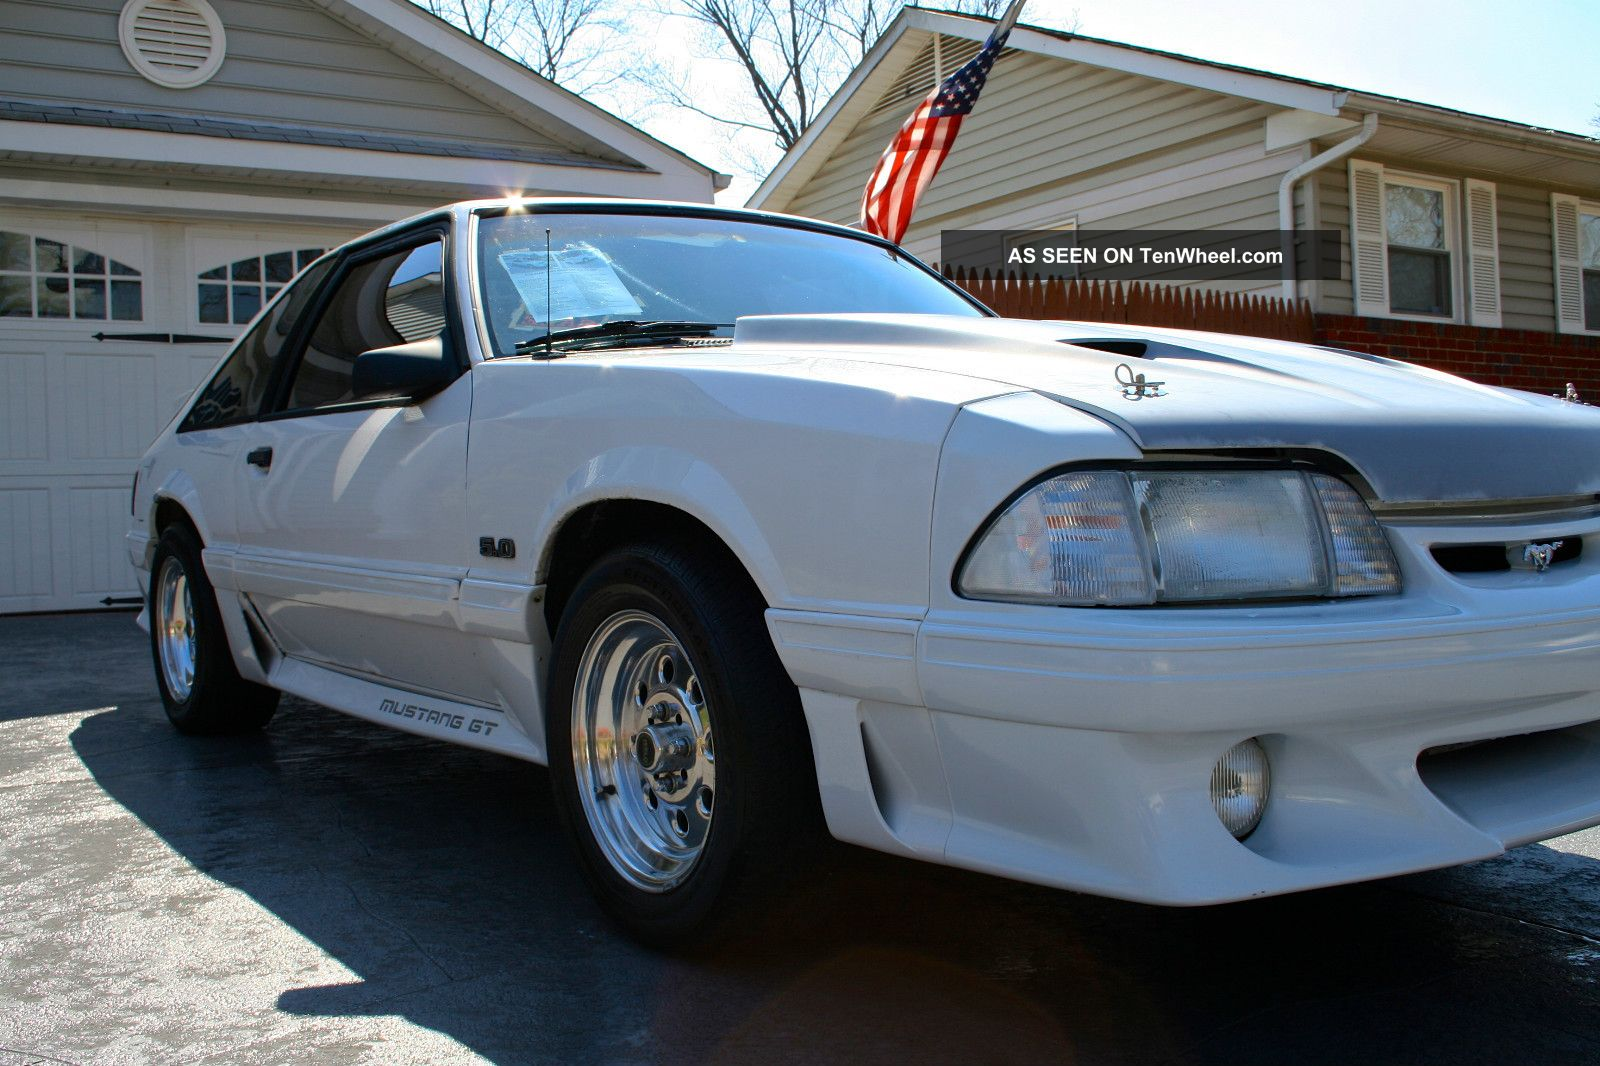 Ford Mustang 5.0 1989